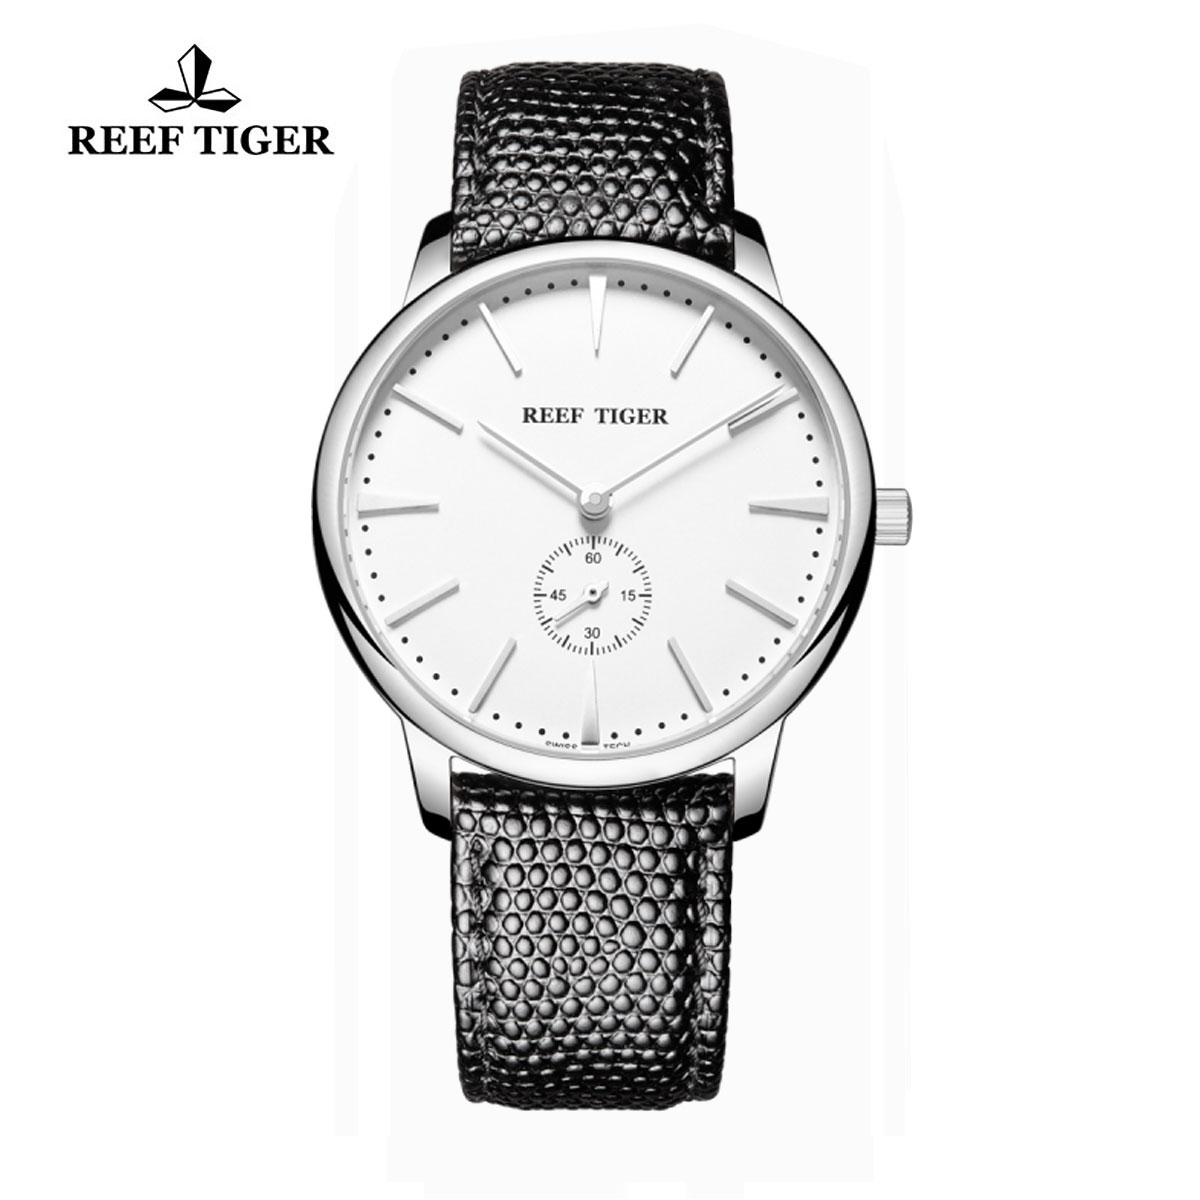 Reef Tiger Vintage Couple Watch White Dial Stainless Steel Calfskin Leather RGA820-YWB